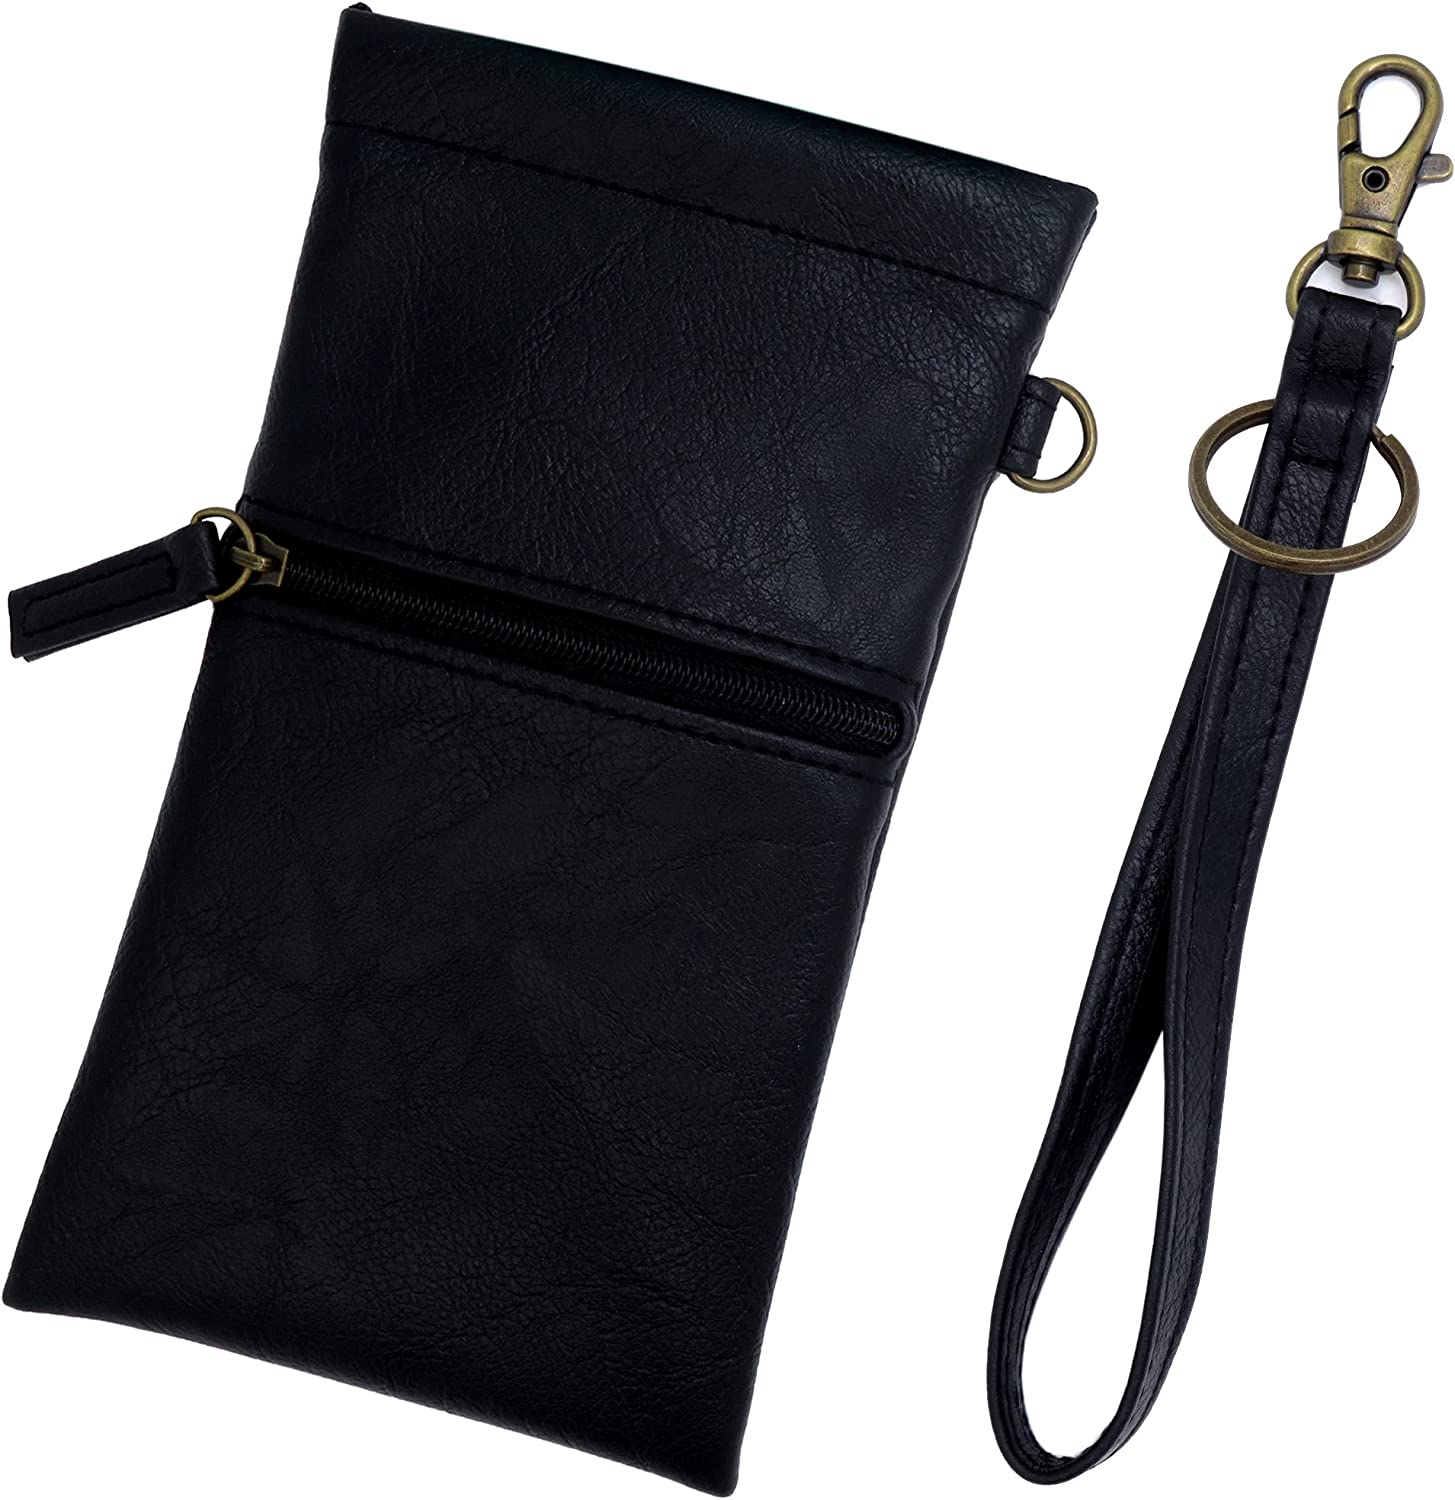 Soft Sunglass Pouch squeeze top extra-Large soft eyeglass case wristlet lanyard & cleaning cloth